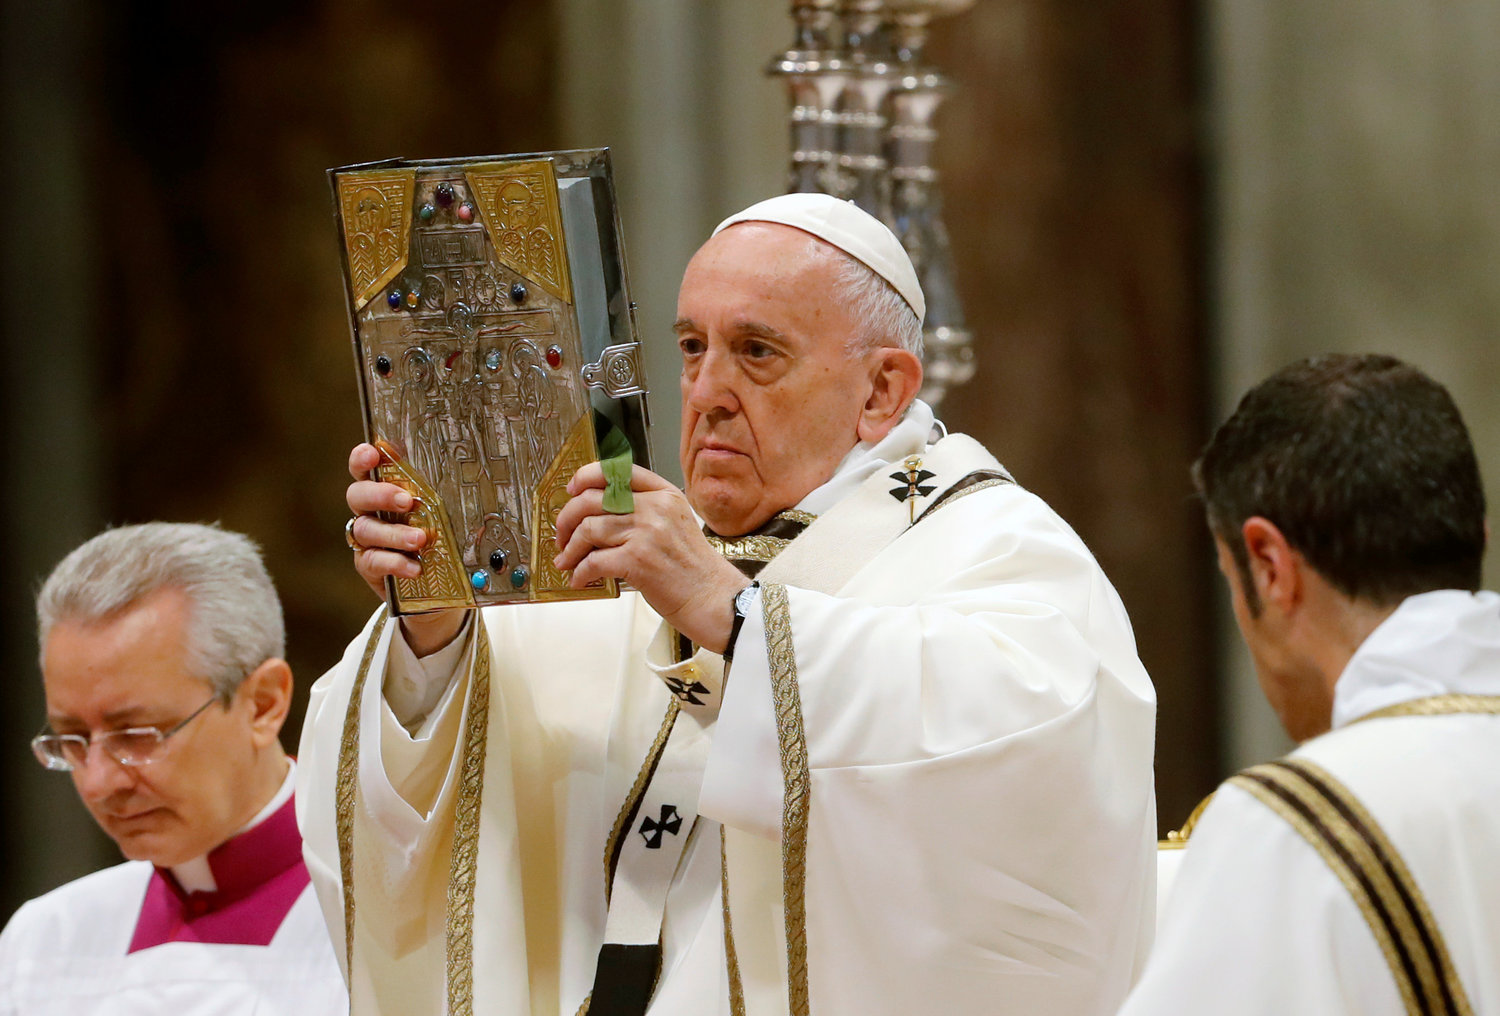 Pope Francis raise the Book of the Gospels as he celebrates Mass on Holy Thursday in St. Peter's Basilica at the Vatican April 18, 2019.